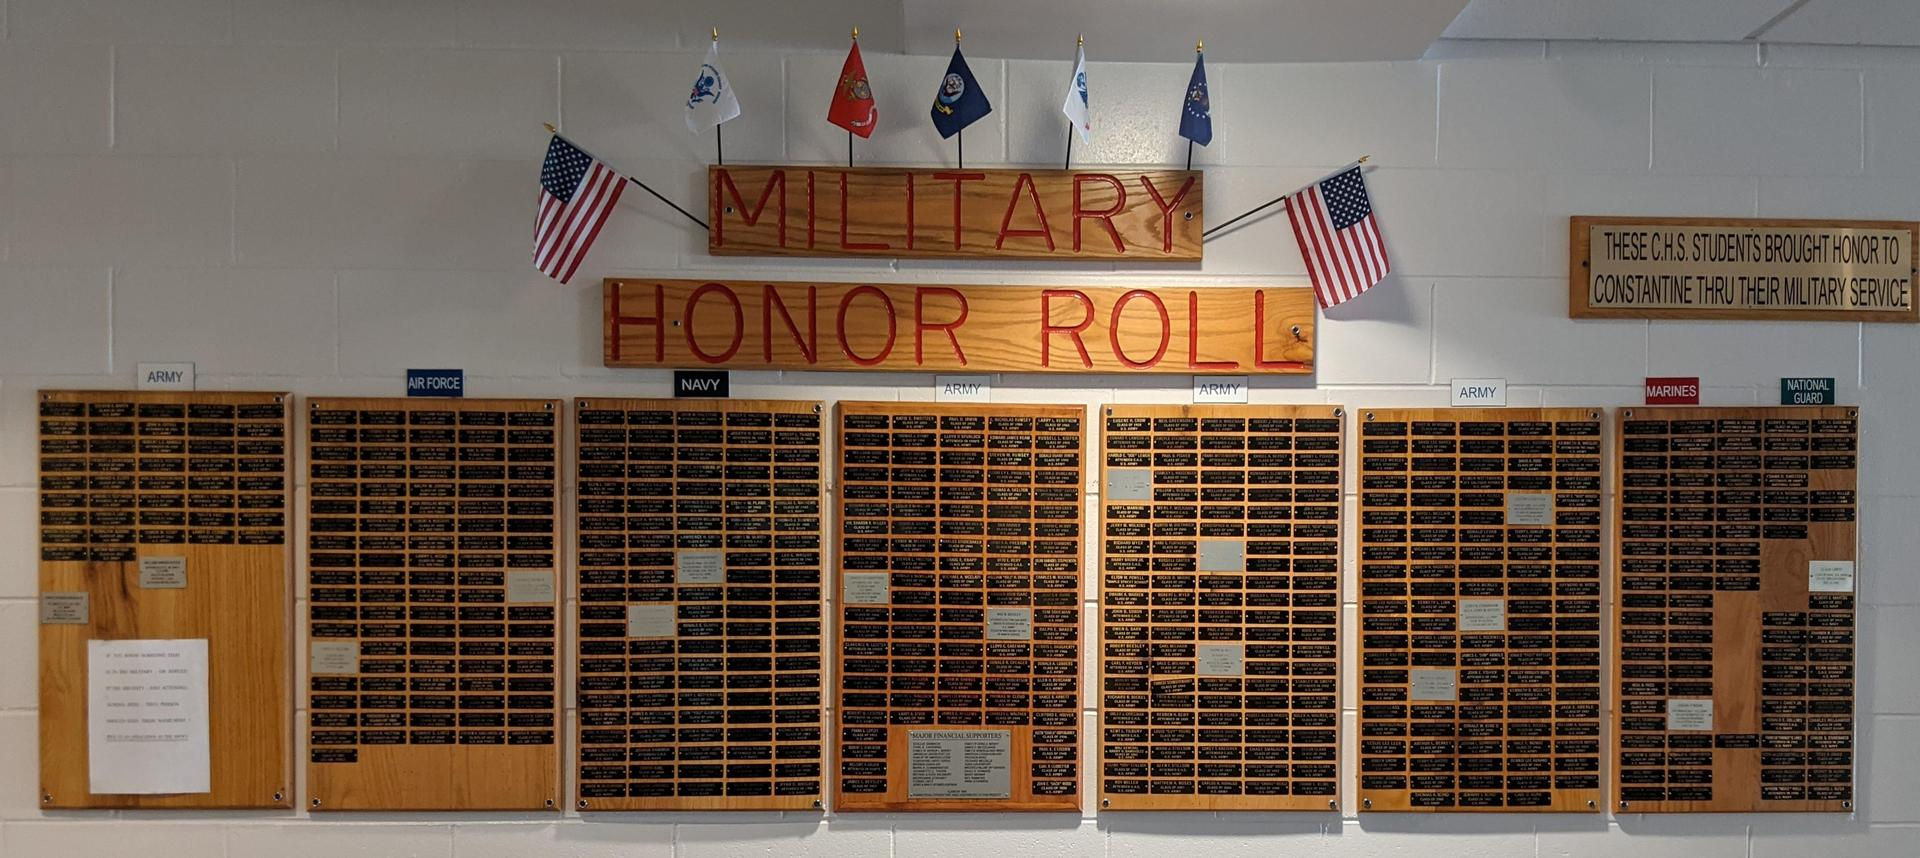 Photograph of the Wall of Fame that displays the flag and name of the various branches of the military and the names of C.H.S. students that enlisted in each.